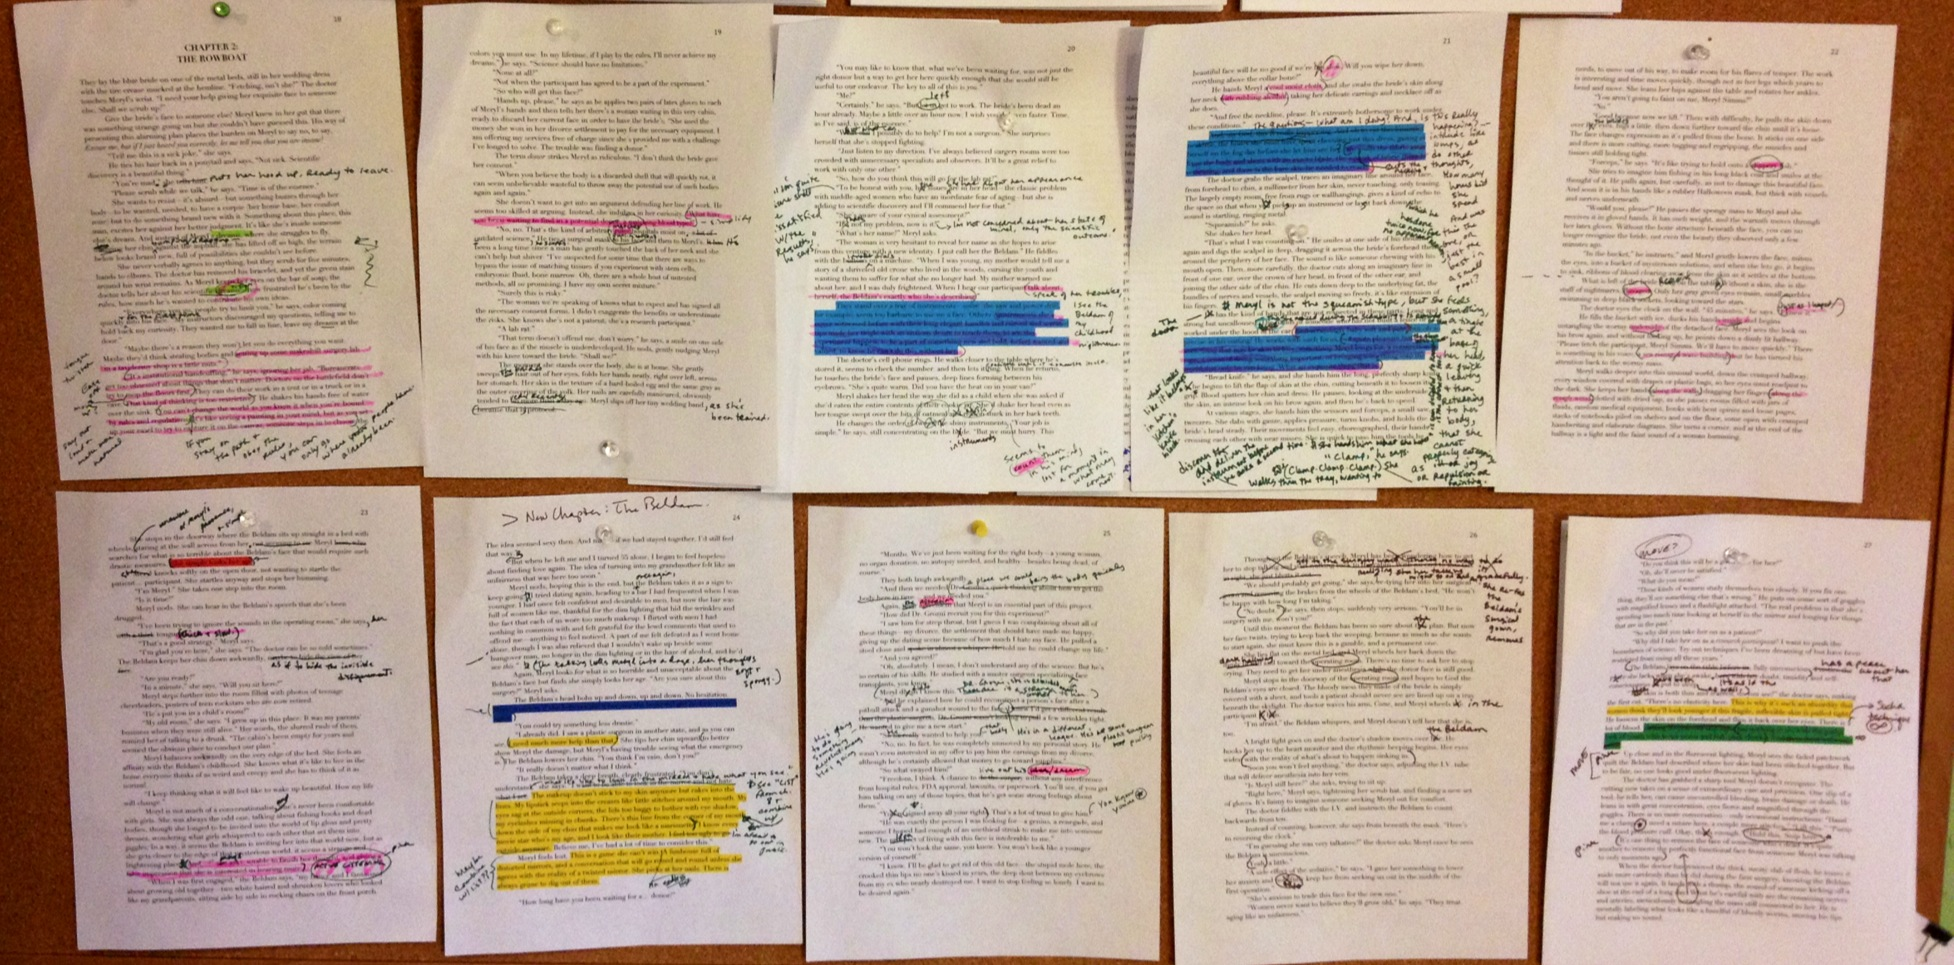 pages of first draft with colour hi-lights and hand writing